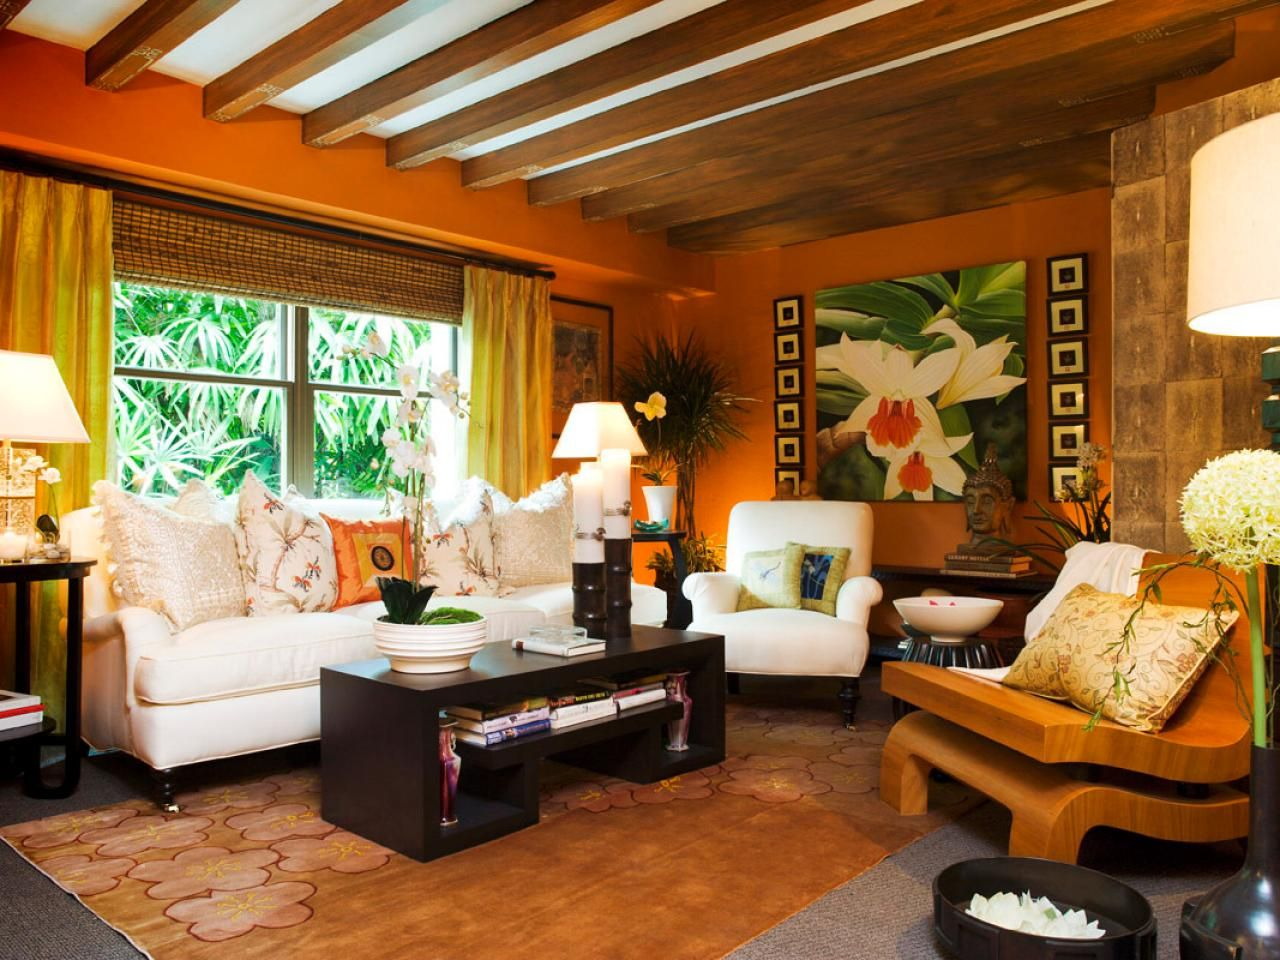 Photos Hgtv Mb Living Room Tropical Theme Living